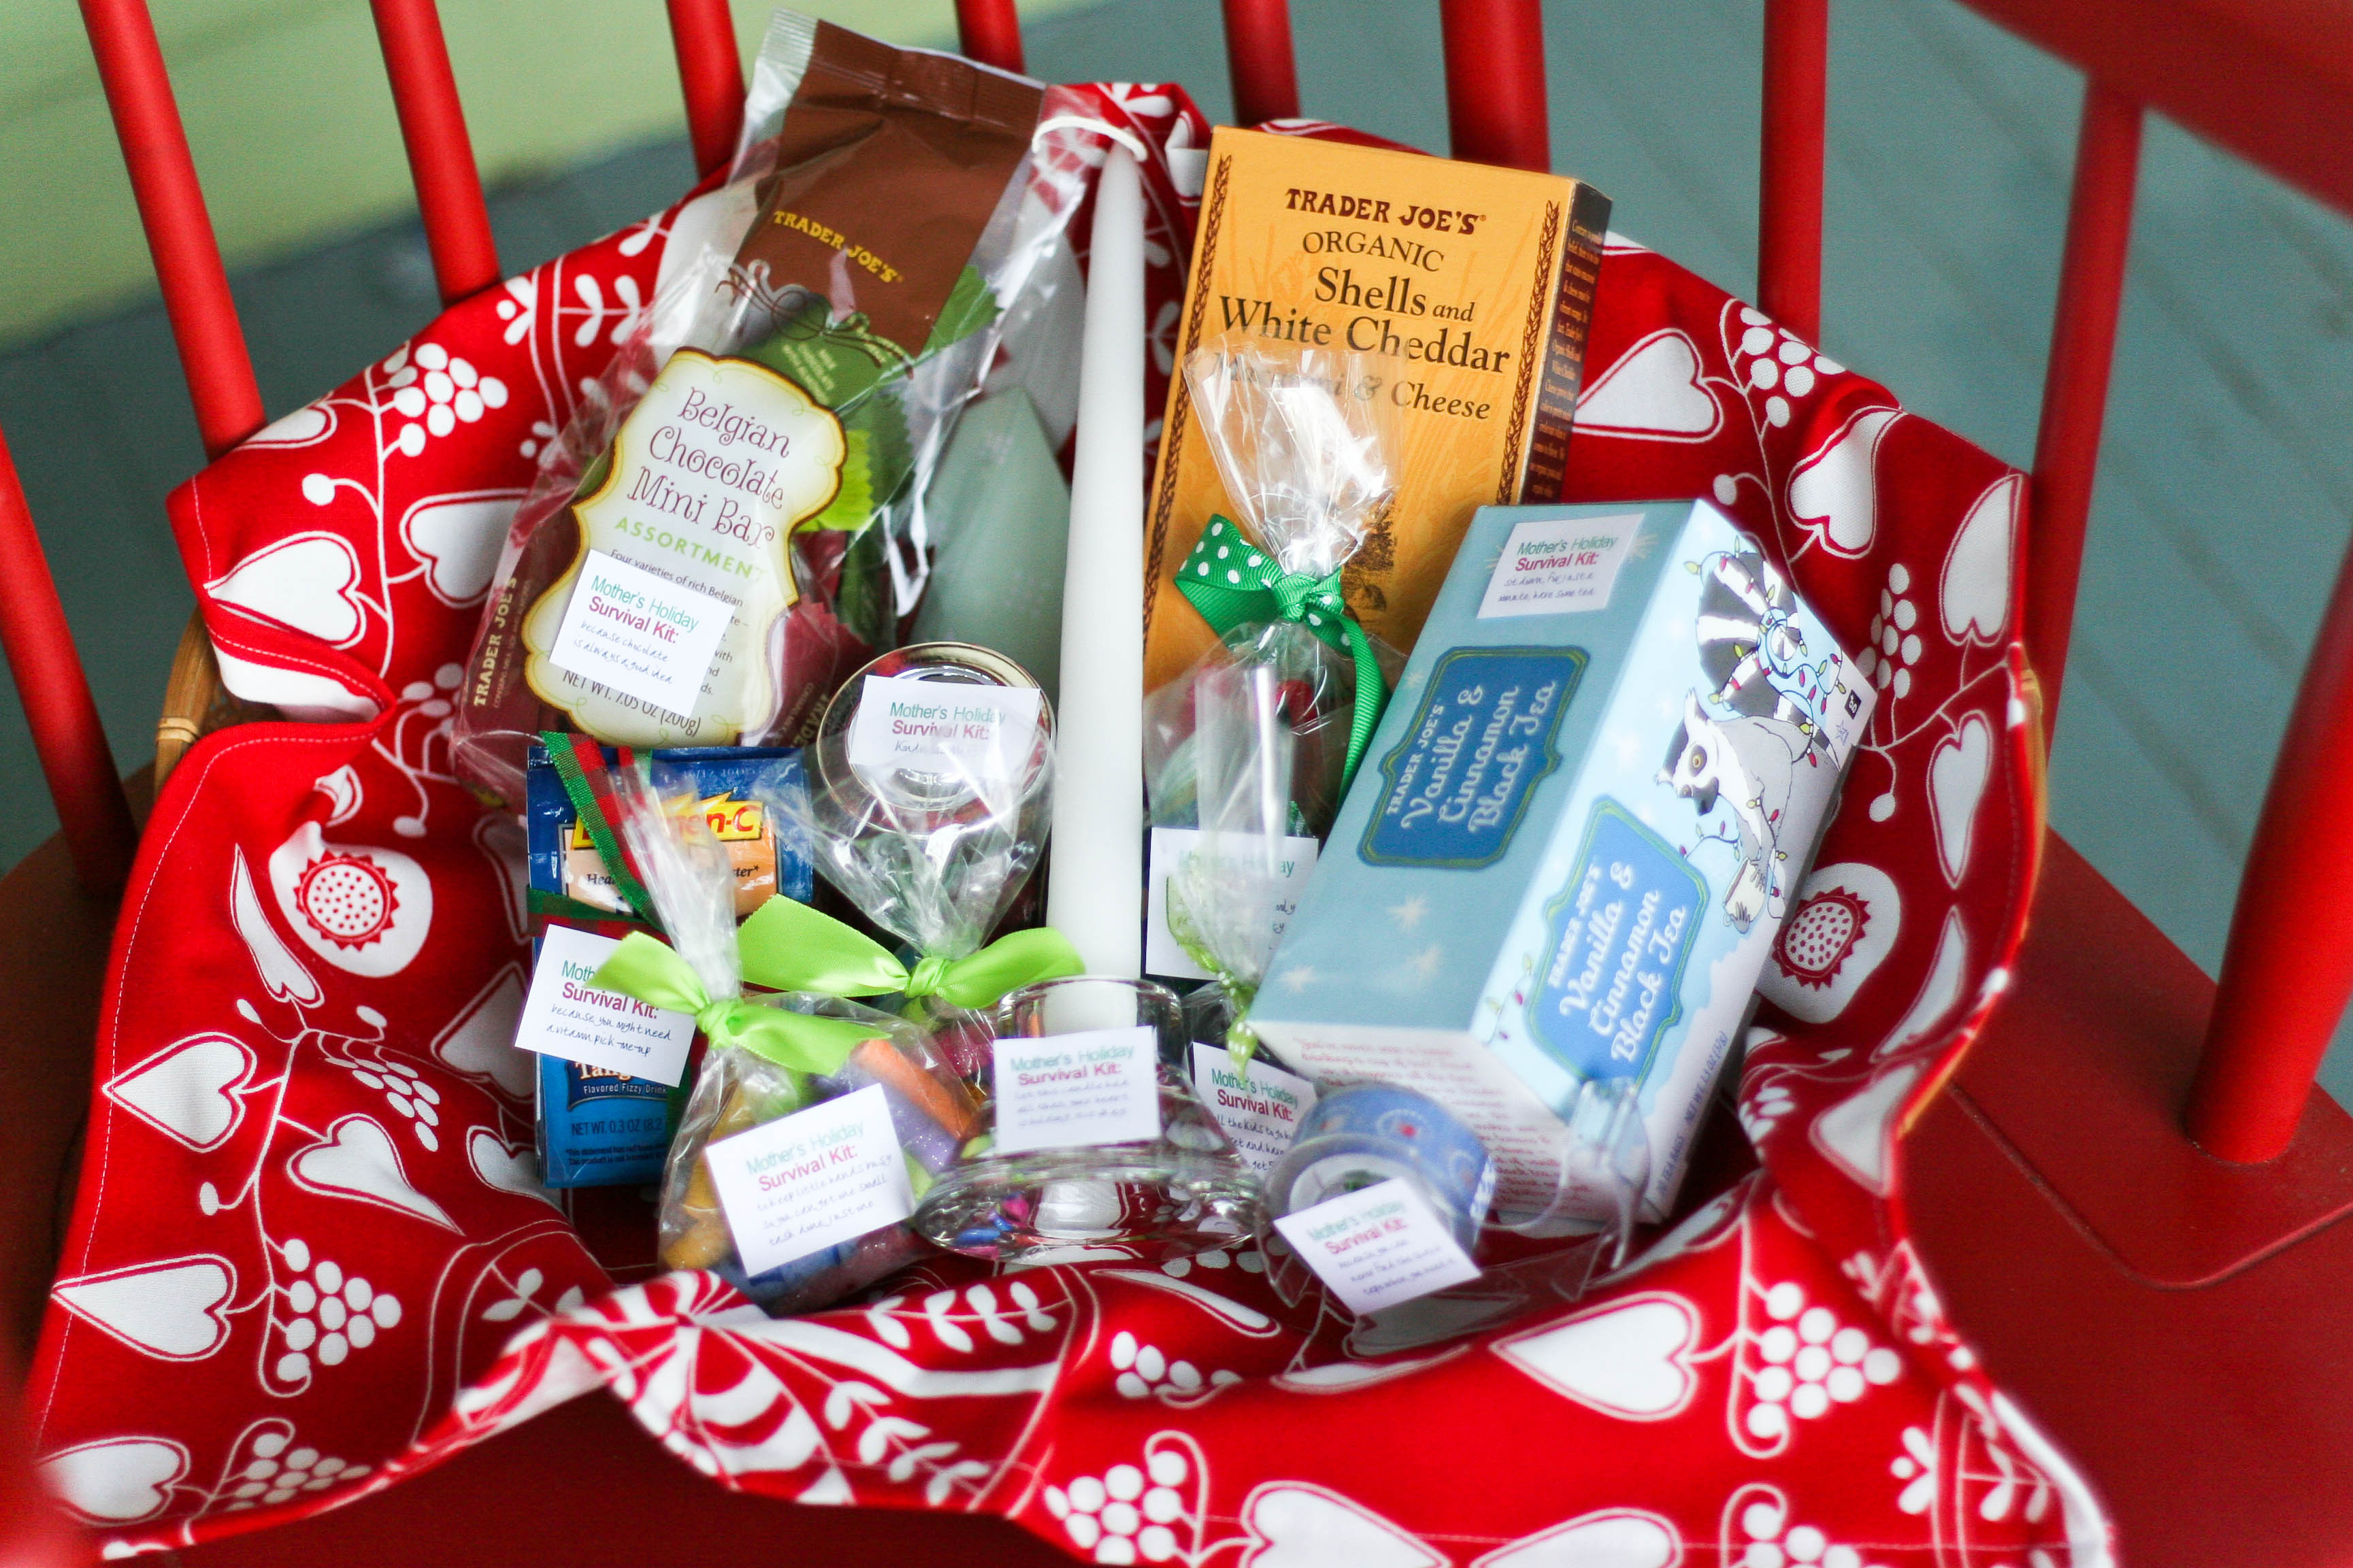 guerrilla goodness: the mother's holiday survival kit | Kindnessgirl